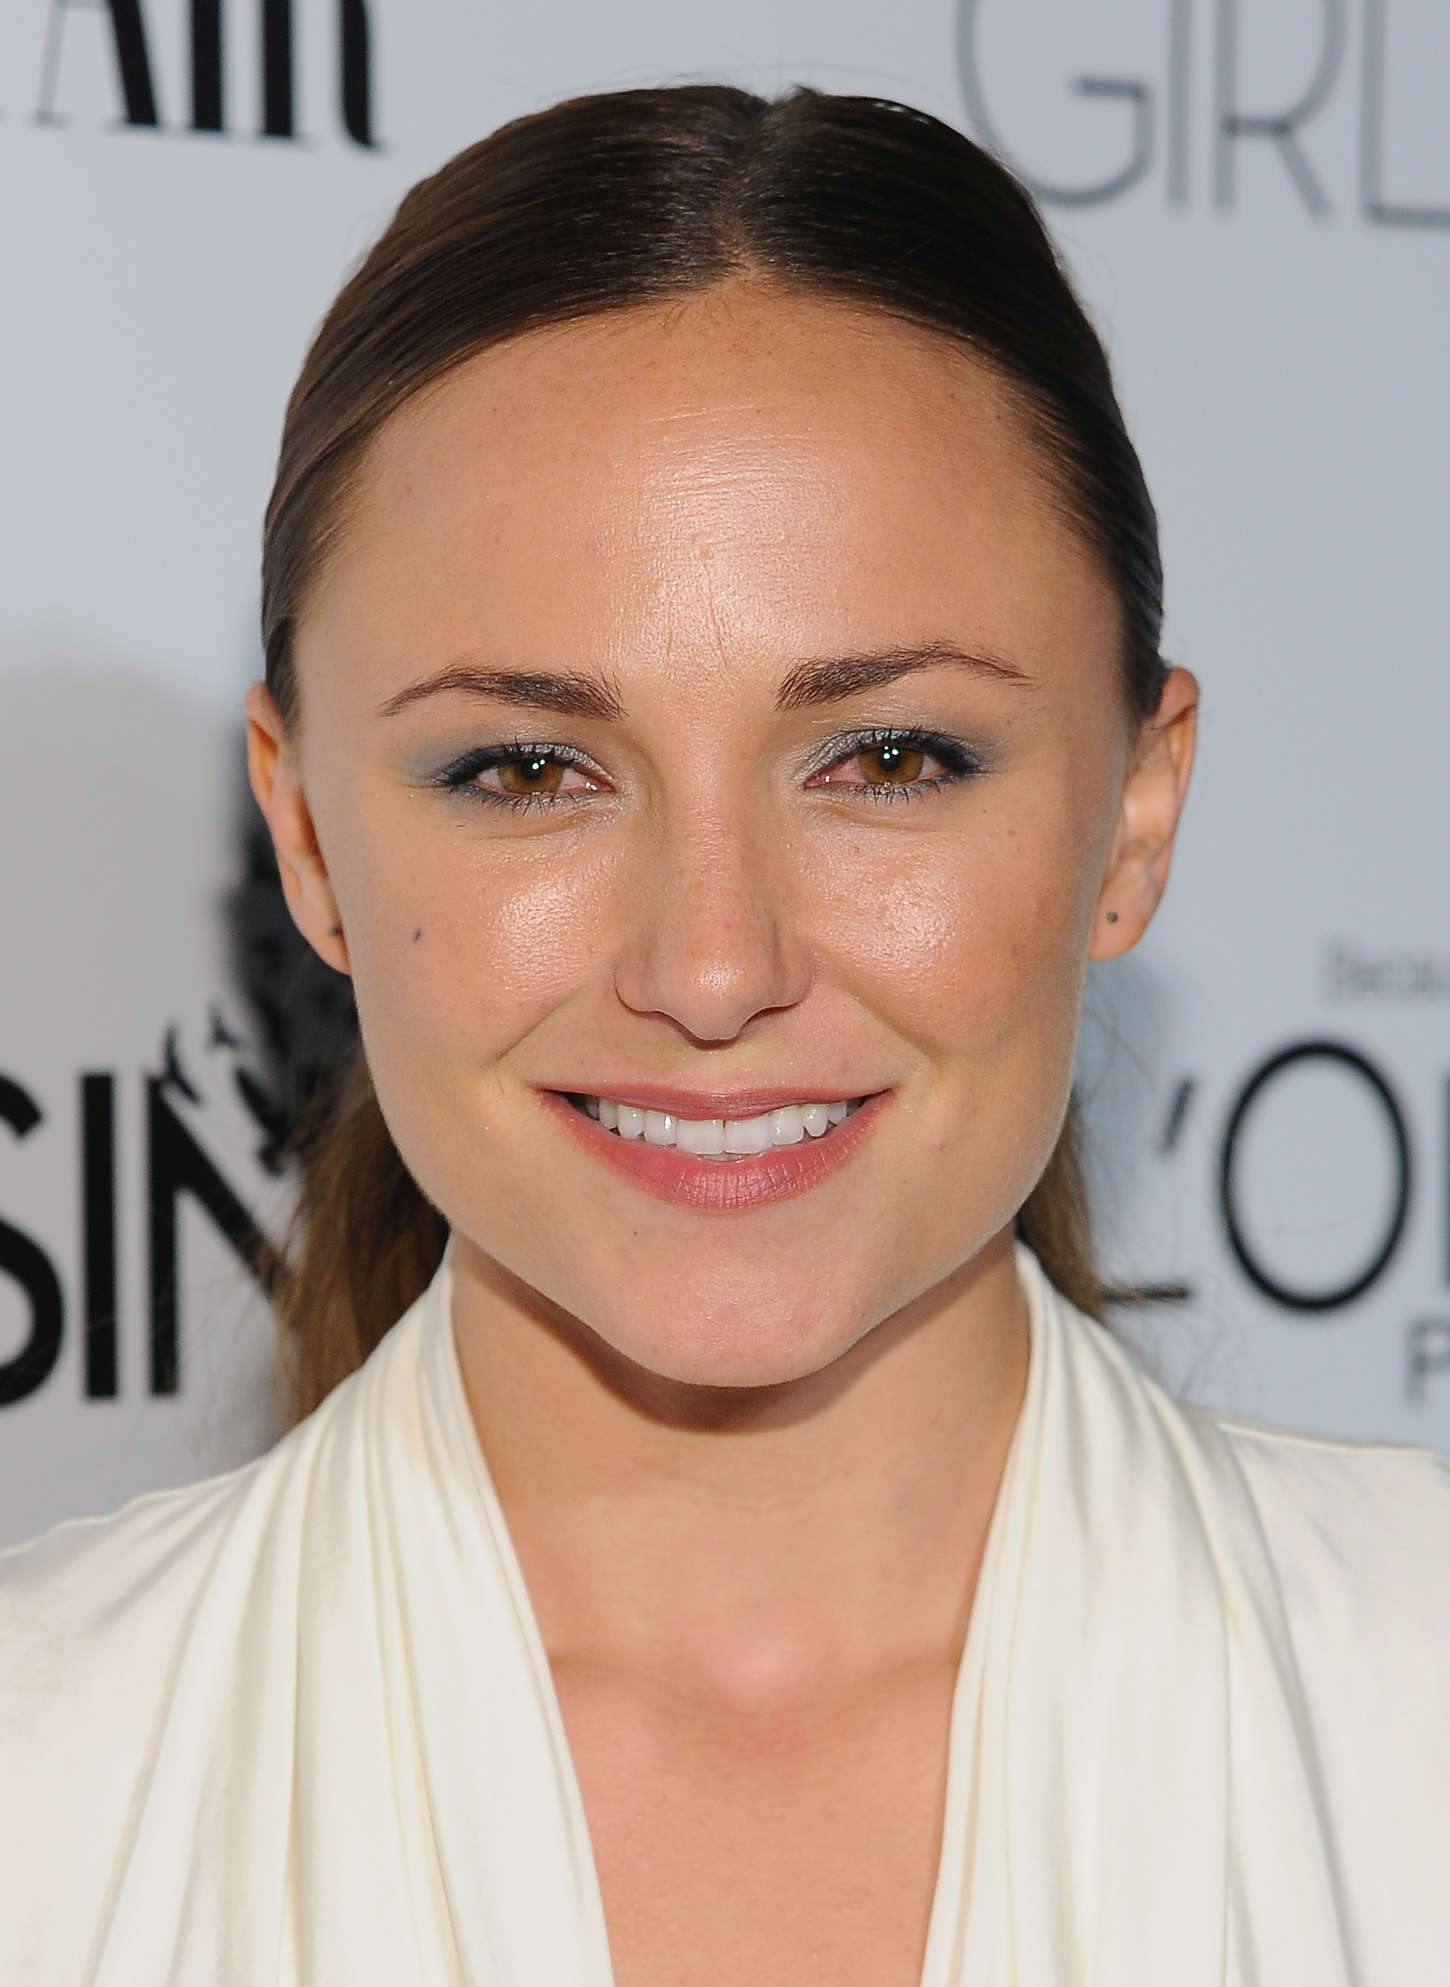 Briana Evigan VANITY FAIR and LOreal Paris D.J. Night Benefit in Los Angeles